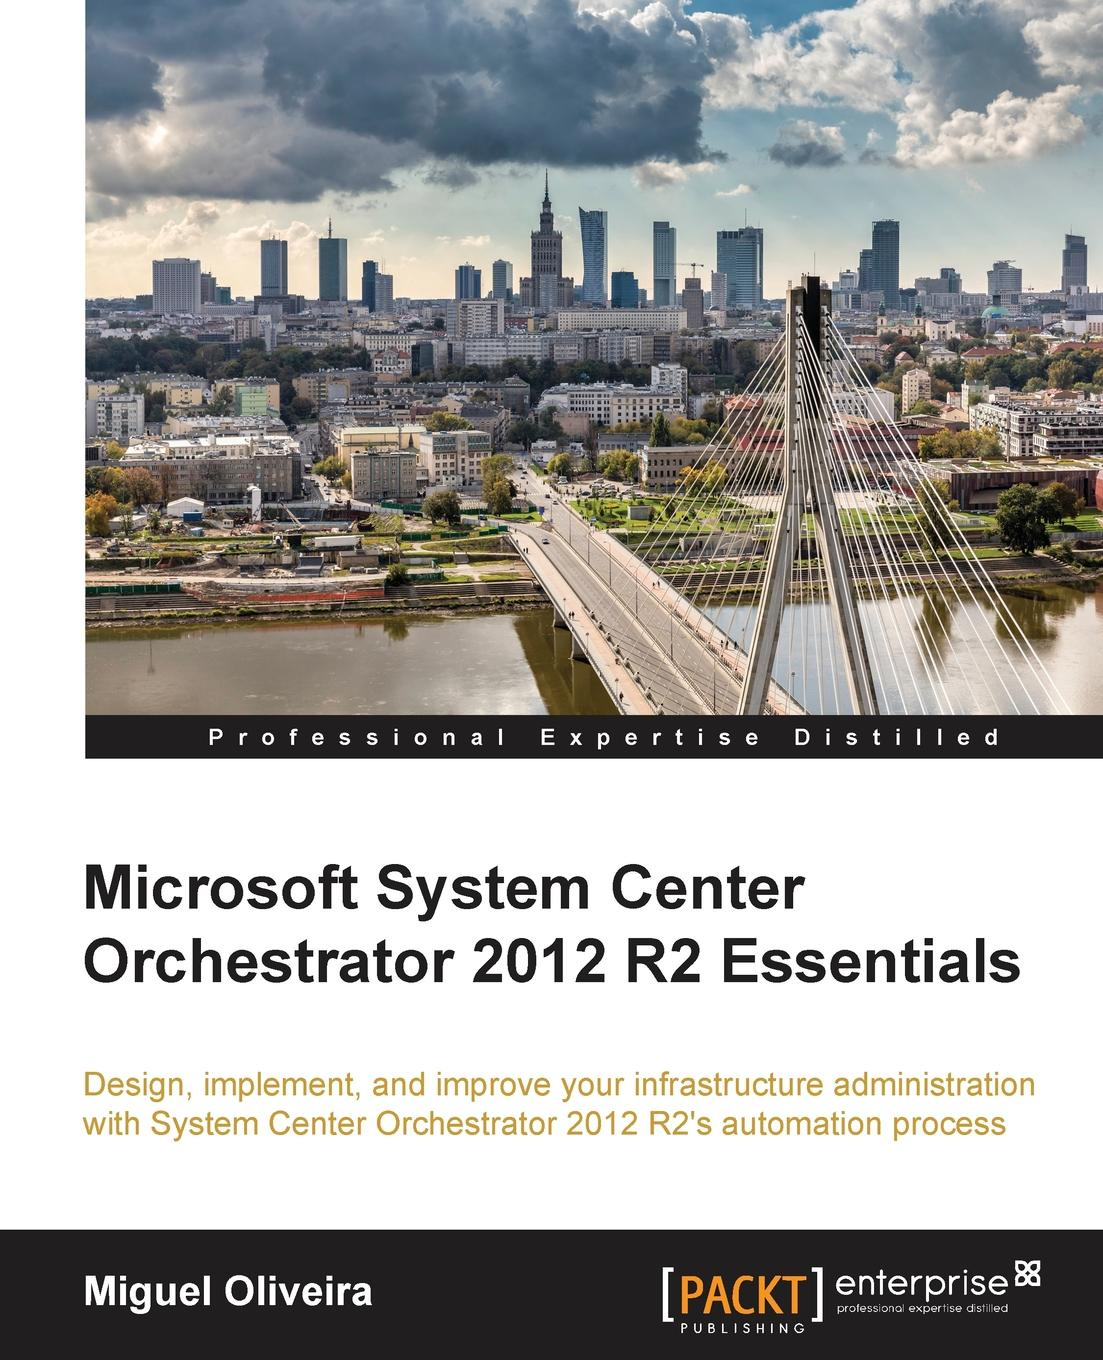 Miguel Oliveira Microsoft System Center Orchestrator 2012 R2 Essentials 2012 full color 180 pages printing catalog of chef essentials